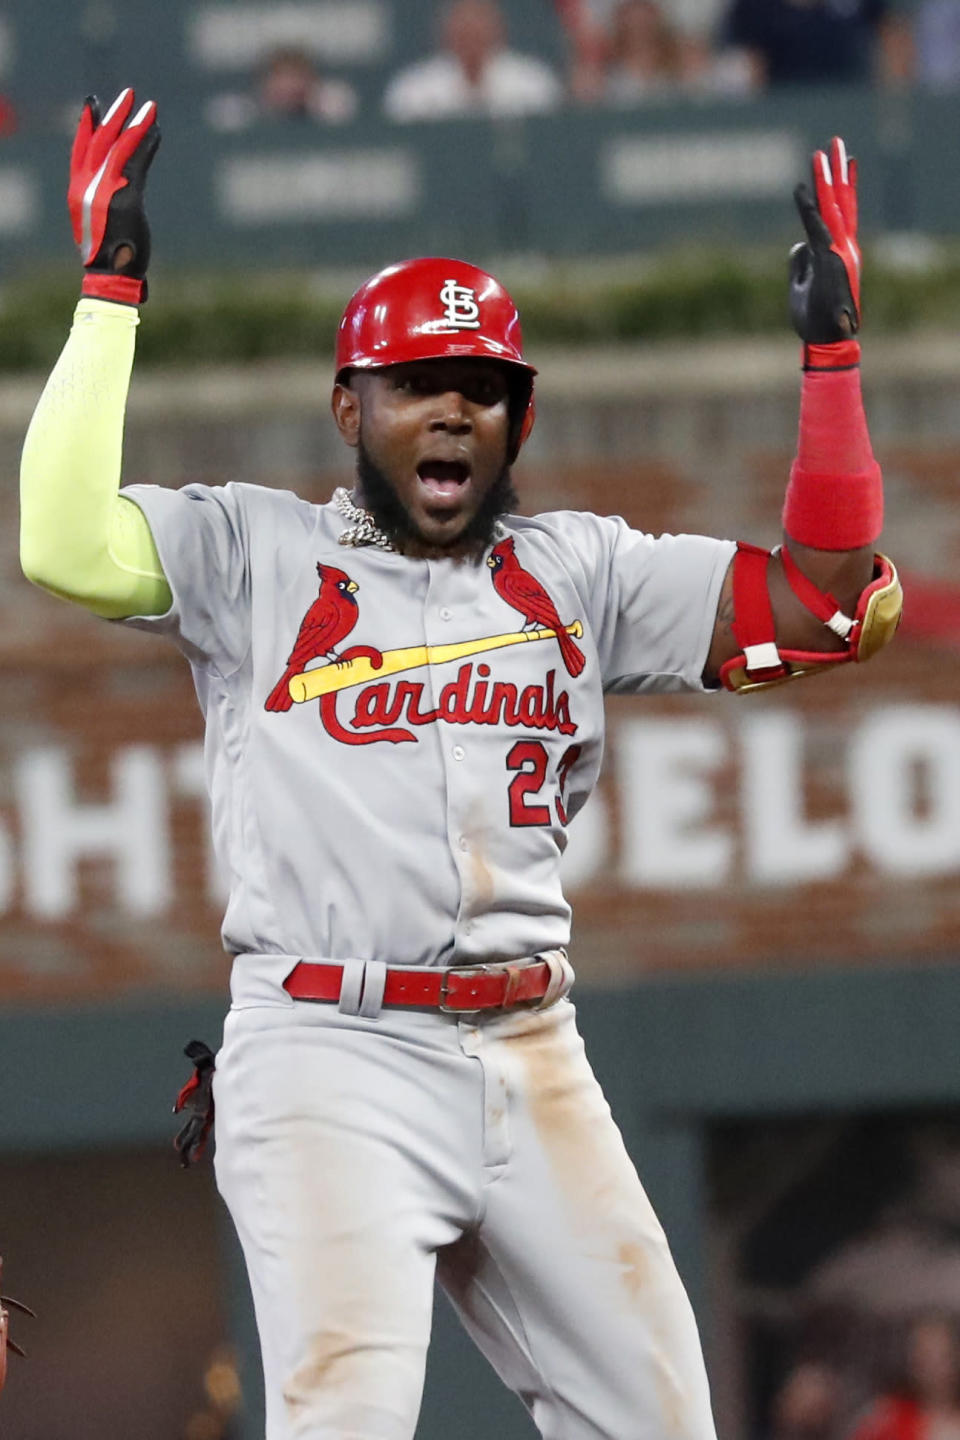 CORRECTS TO DOUBLE, INSTEAD OF SINGLE - St. Louis Cardinals' Marcell Ozuna celebrates his two-run double against the Atlanta Braves in the ninth inning during Game 1 of a best-of-five National League Division Series, Thursday, Oct. 3, 2019, in Atlanta. (AP Photo/John Bazemore)